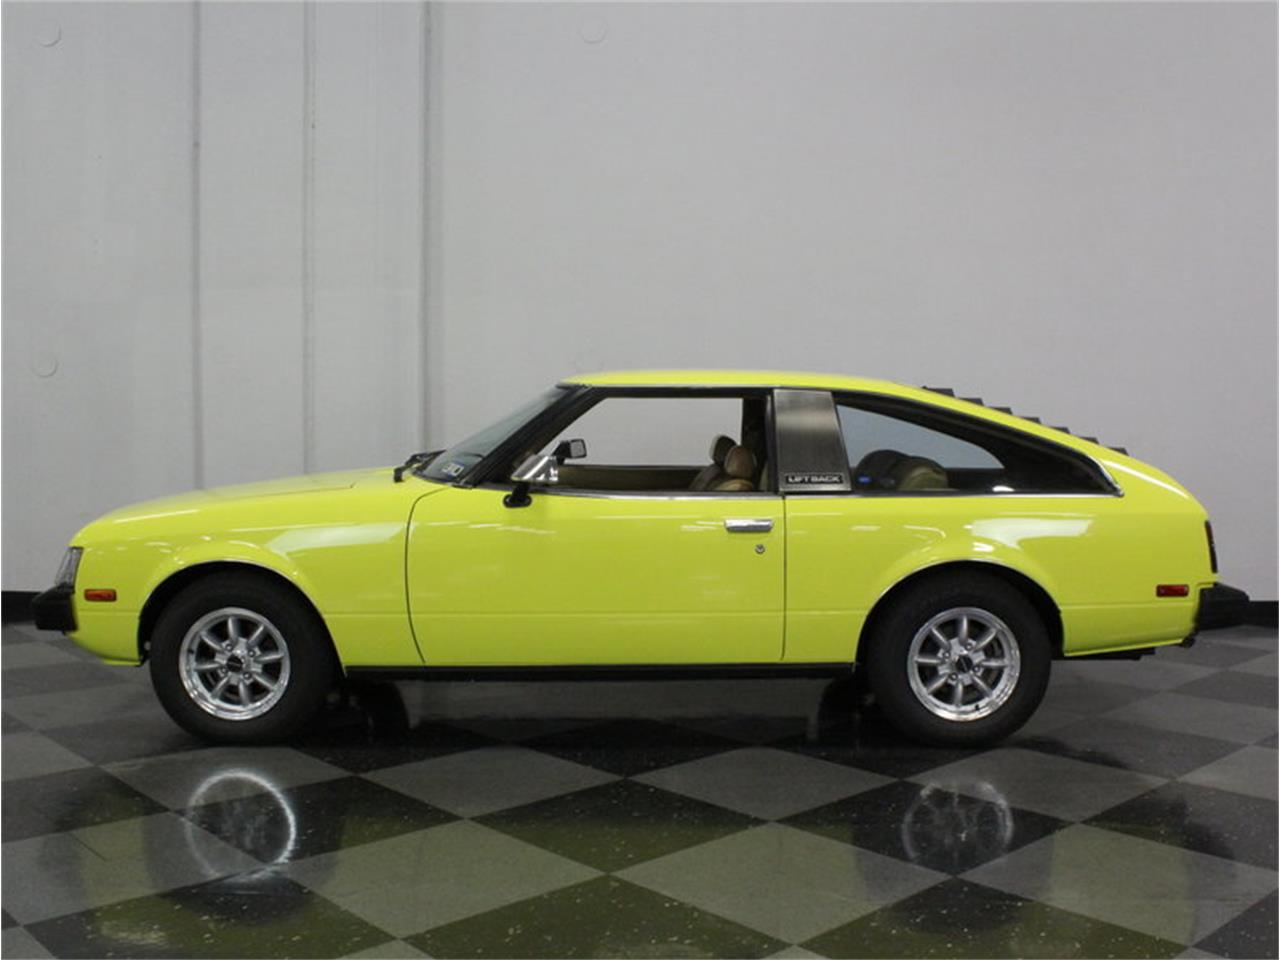 Large Picture of '78 Toyota Celica - $9,995.00 Offered by Streetside Classics - Dallas / Fort Worth - F6ZC